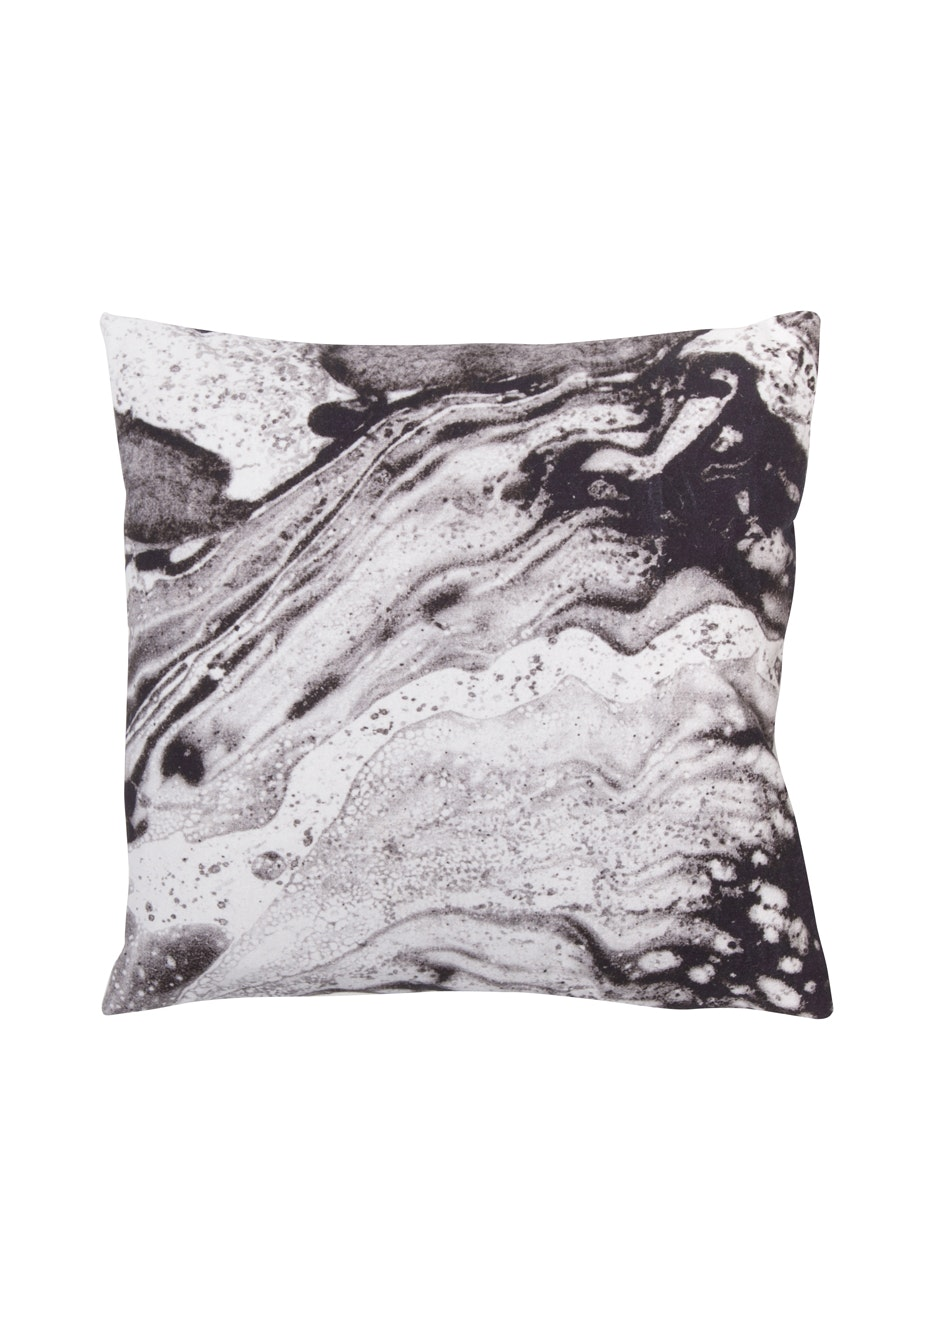 General Eclectic - Cosmos Cushion Grey